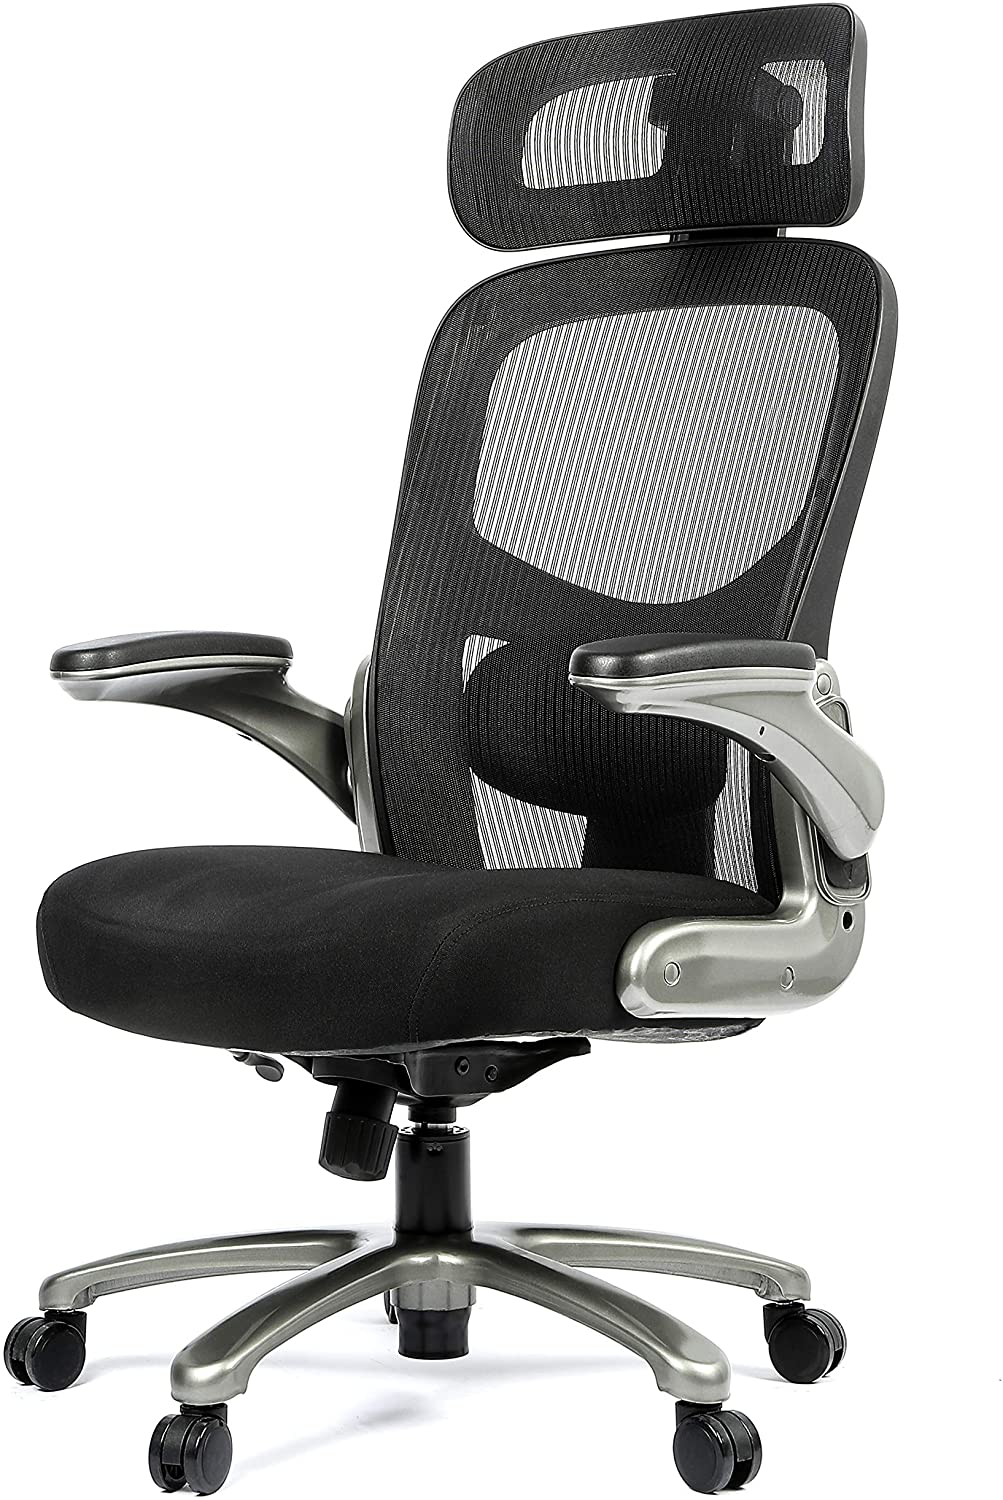 OFFICE FACTOR Big and Tall Office Chair Flip-Up arms, Mesh Office Chair, Swivel Office Chair with Anti Scratch Caster Wheels, 500 Lbs Rated Mesh Executive Chair (Black with Headrest)